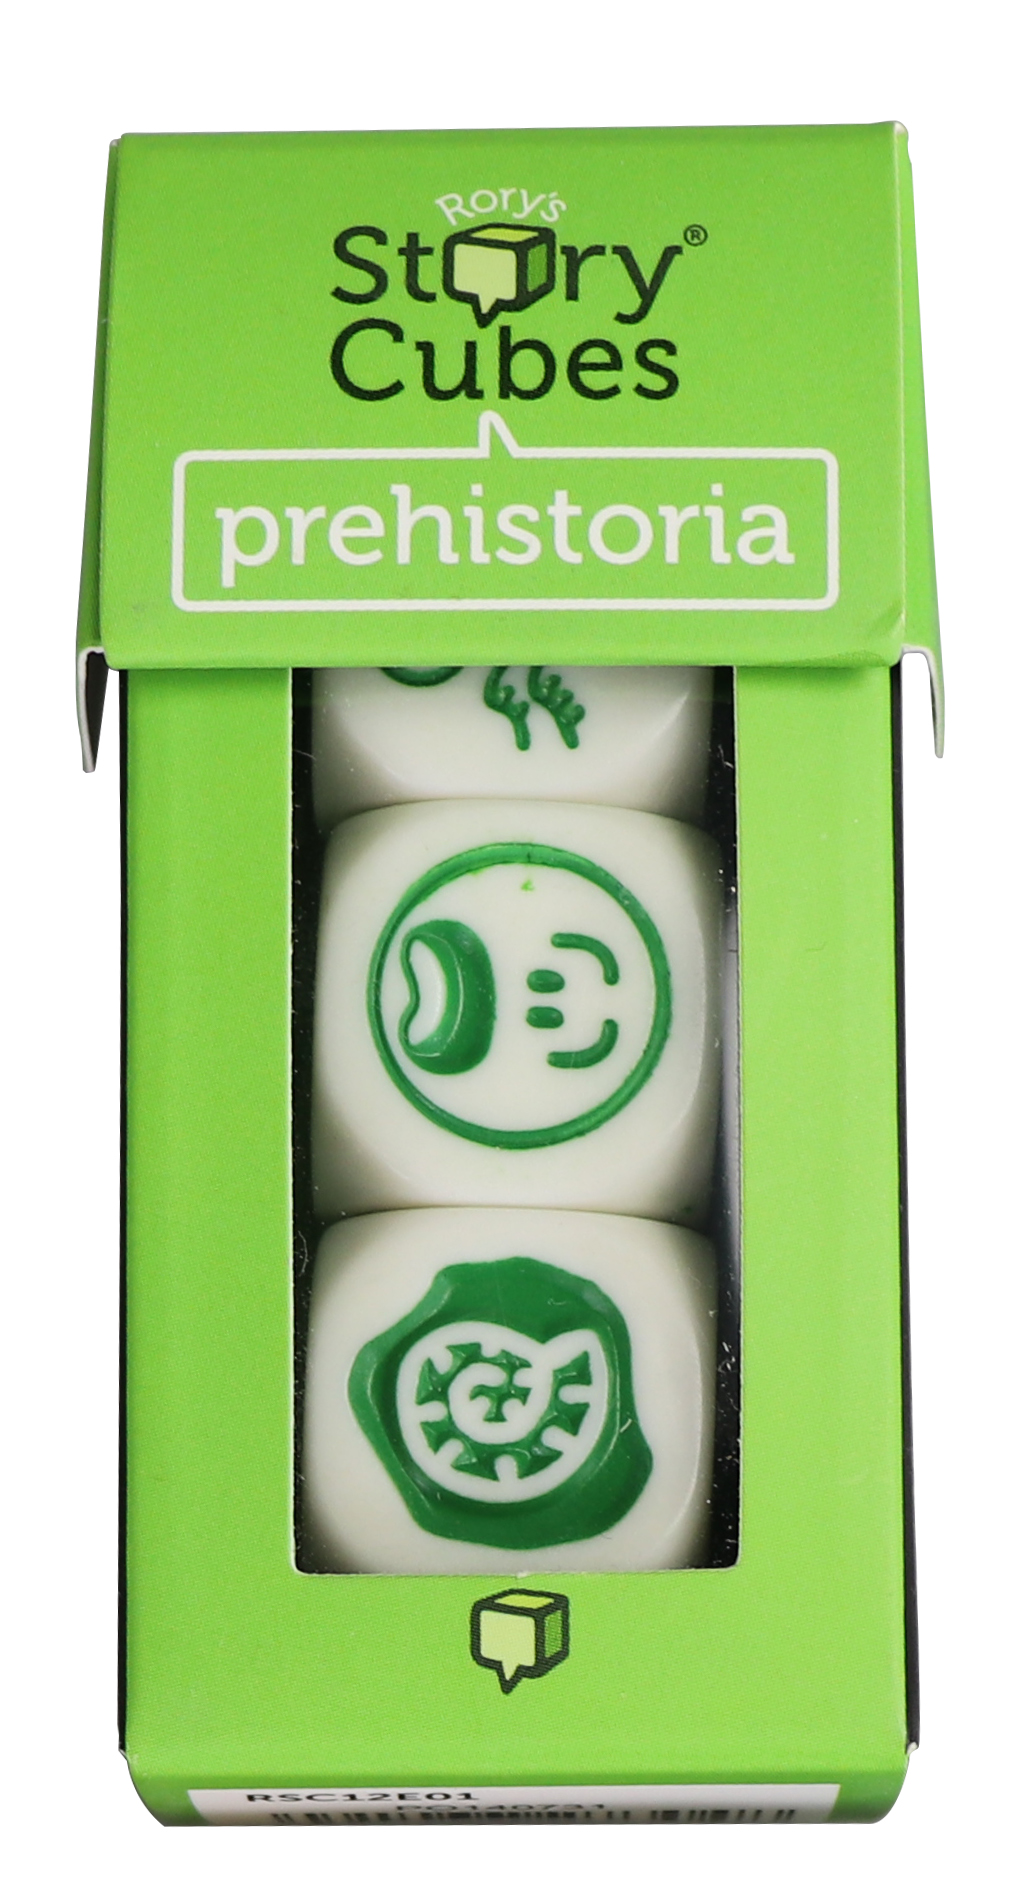 Story Cubes - Prehistoria | Rory's Story Cubes